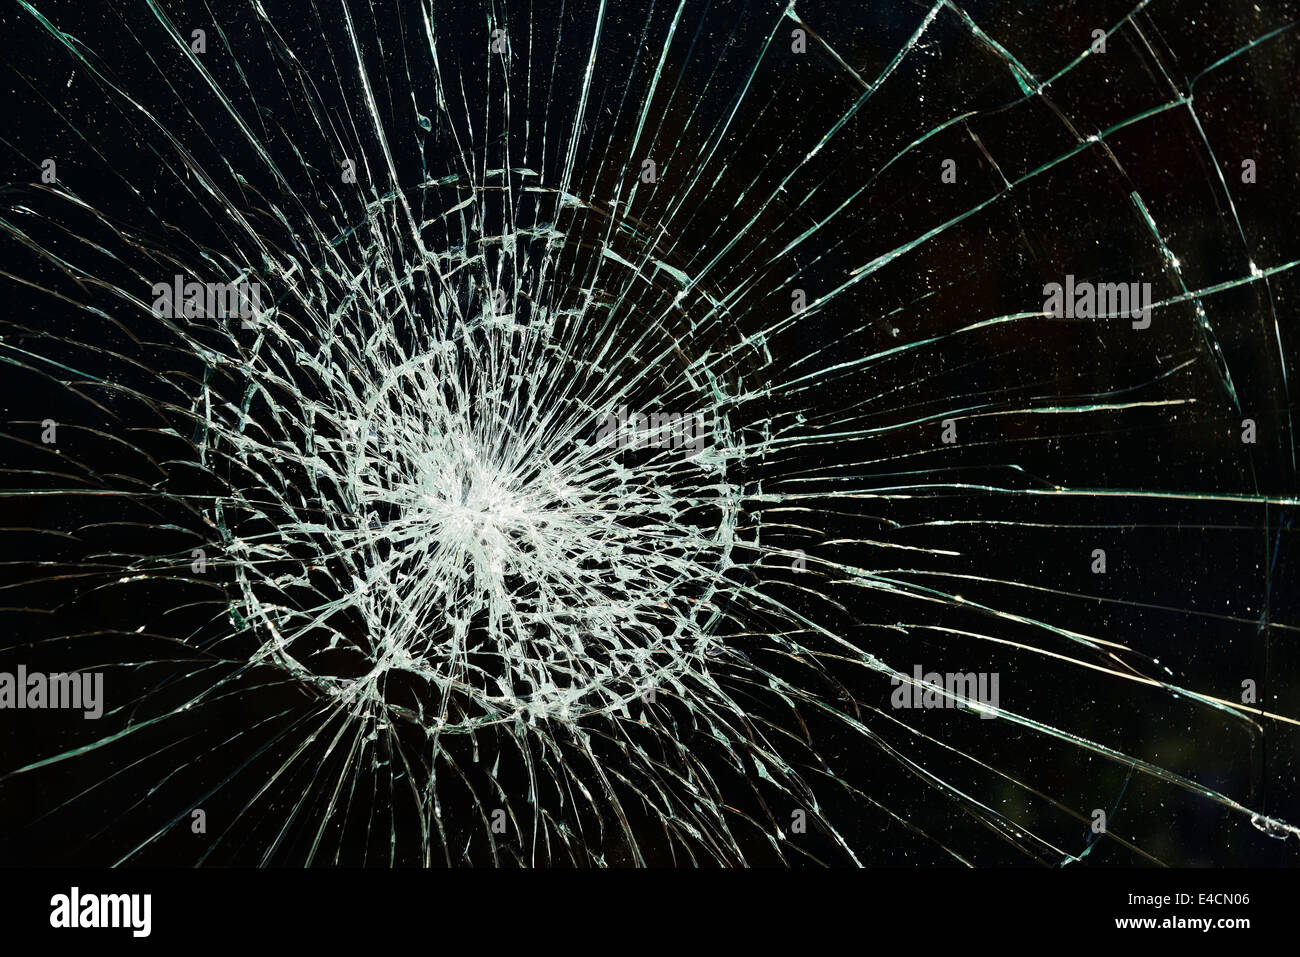 Shattered pane of glass - Stock Image